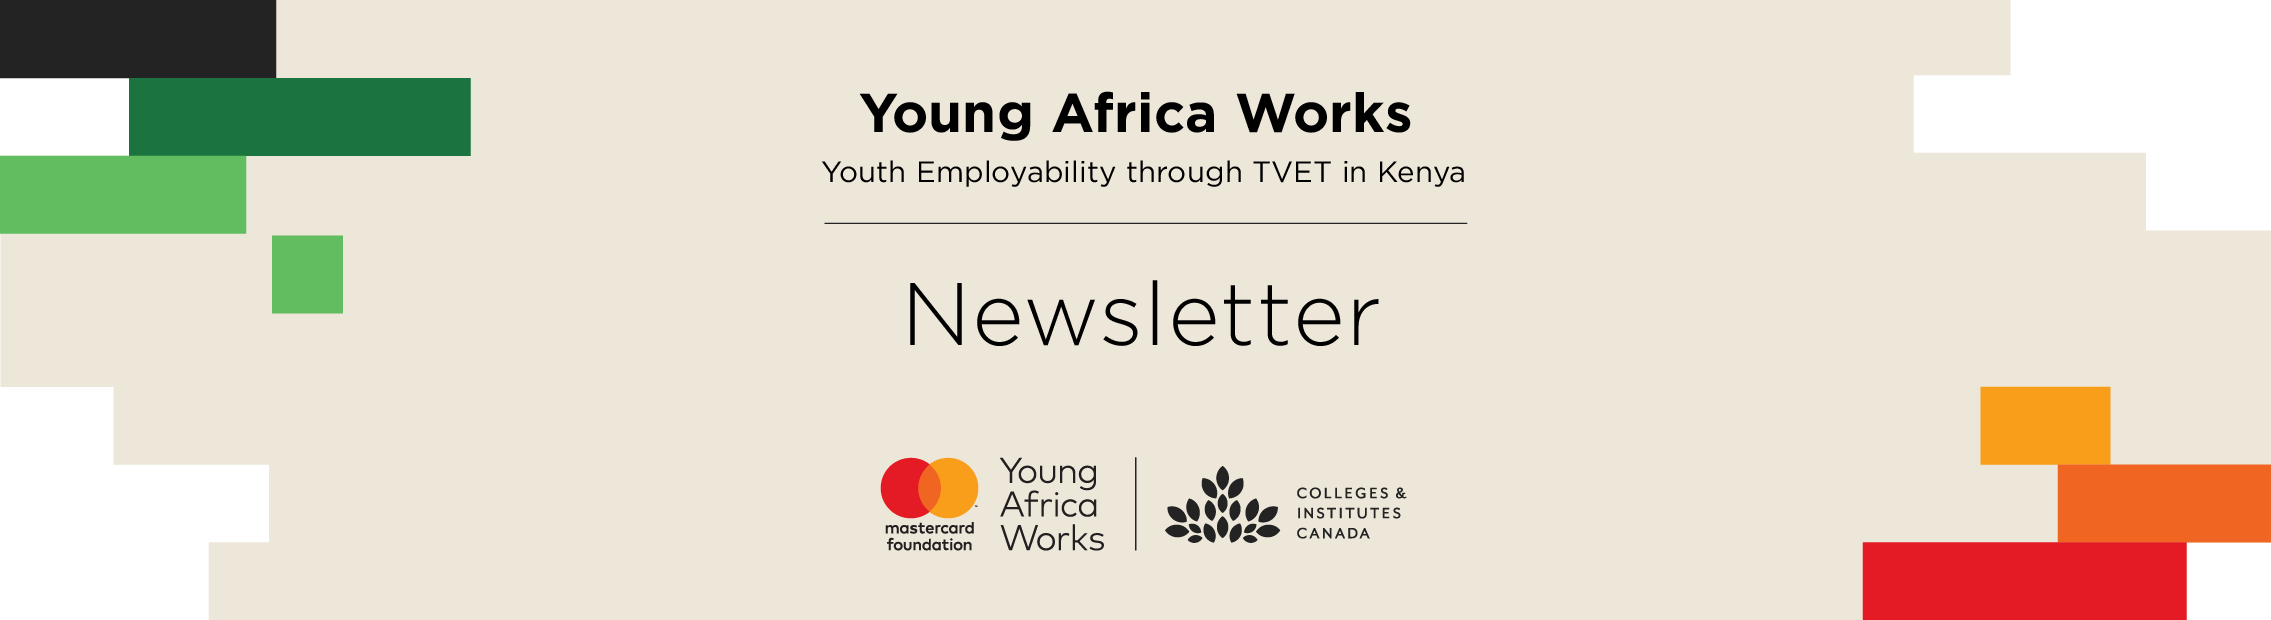 Young Africa Works Newsletter